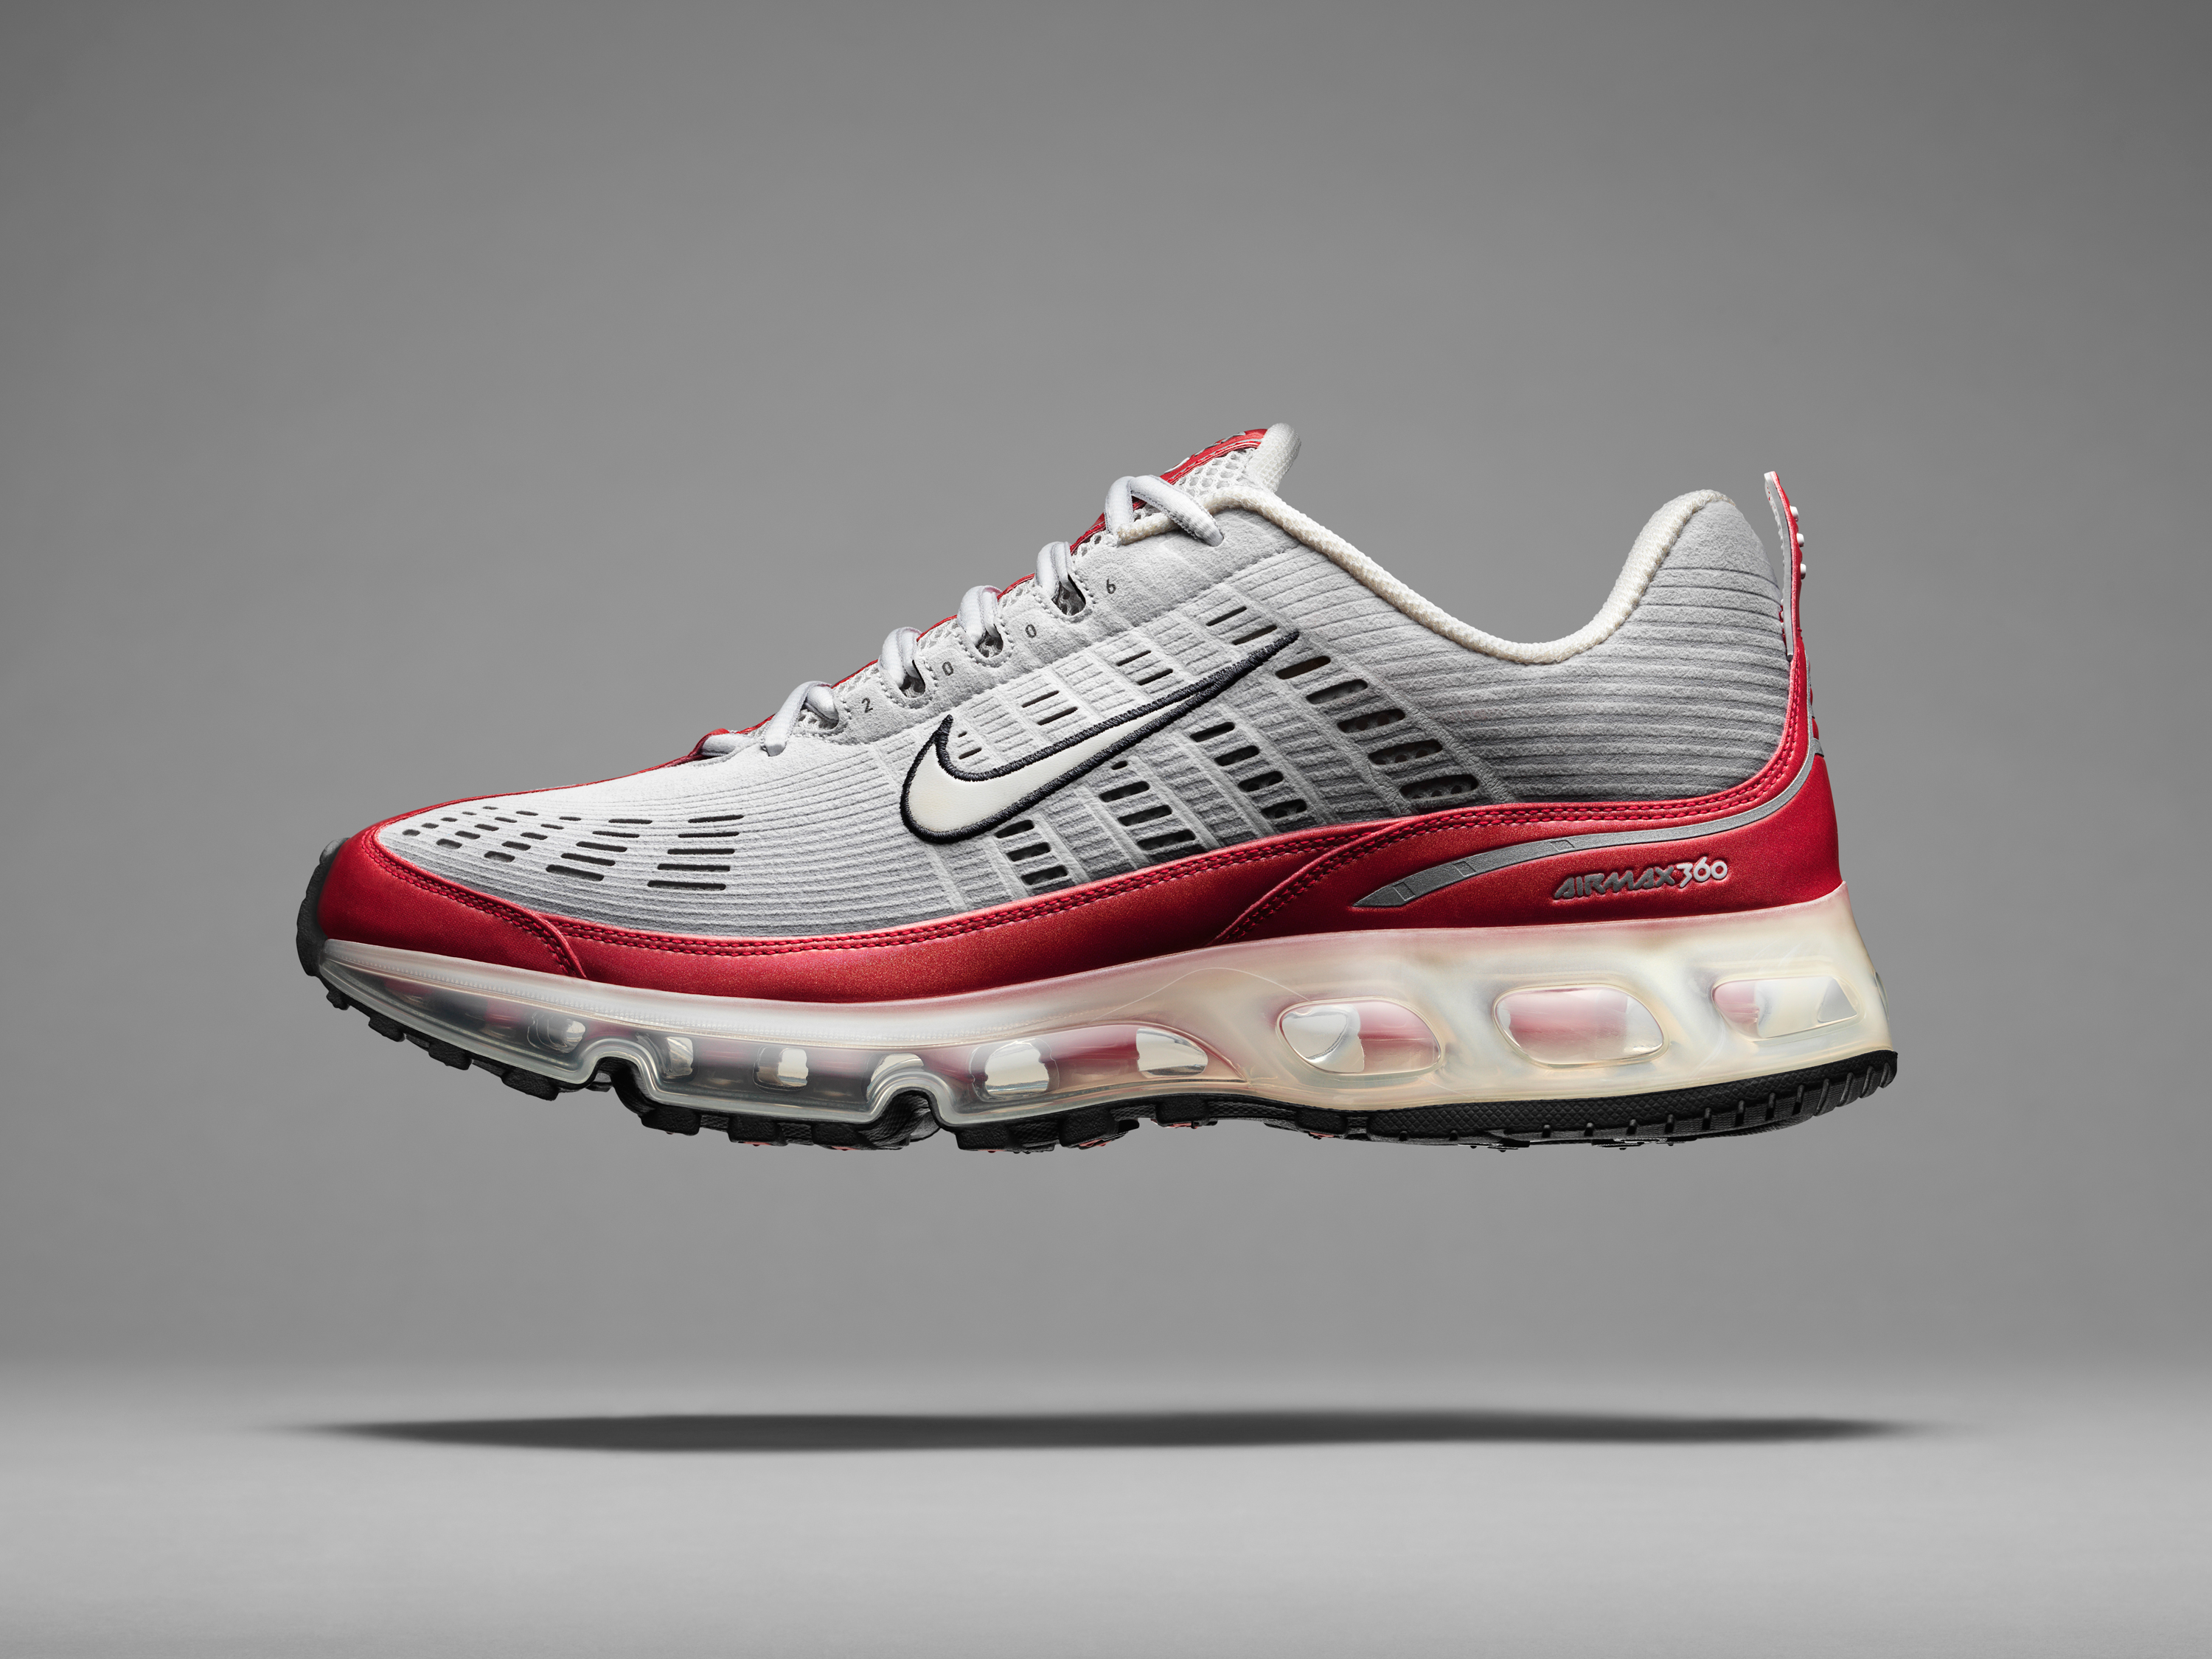 2006 nike air max hauts sommets